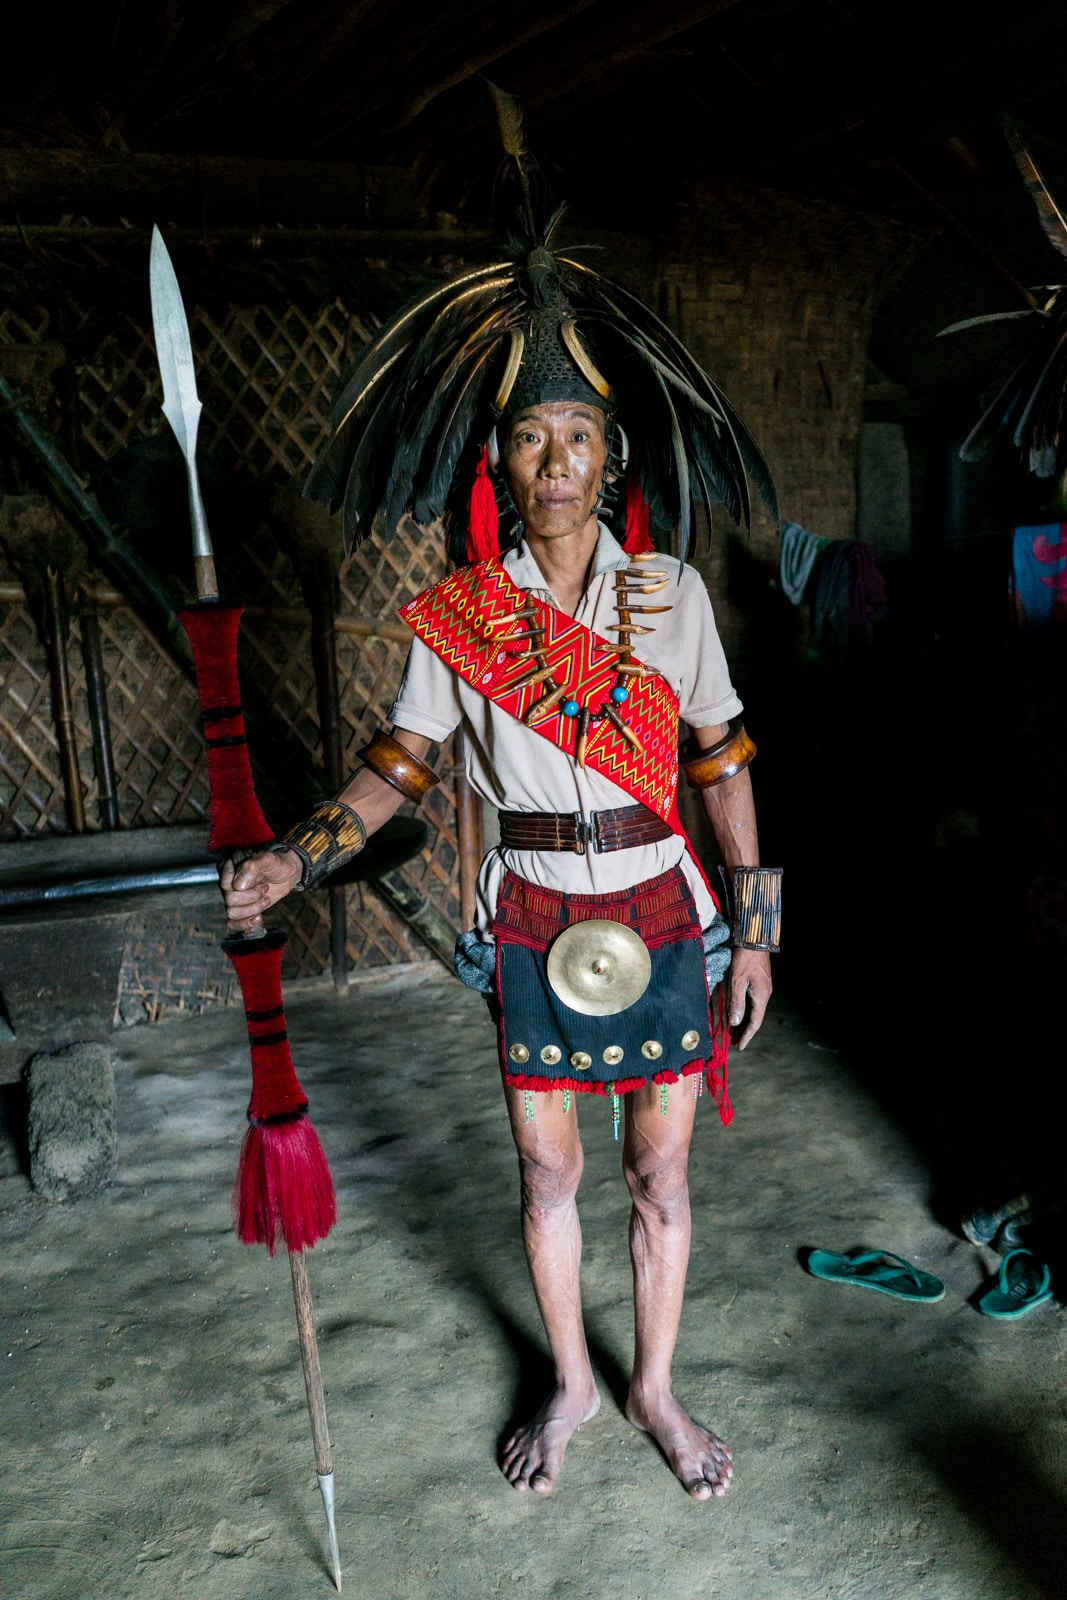 Traditional Naga headhunter dress on a local man in Longwa village, Nagaland, India.